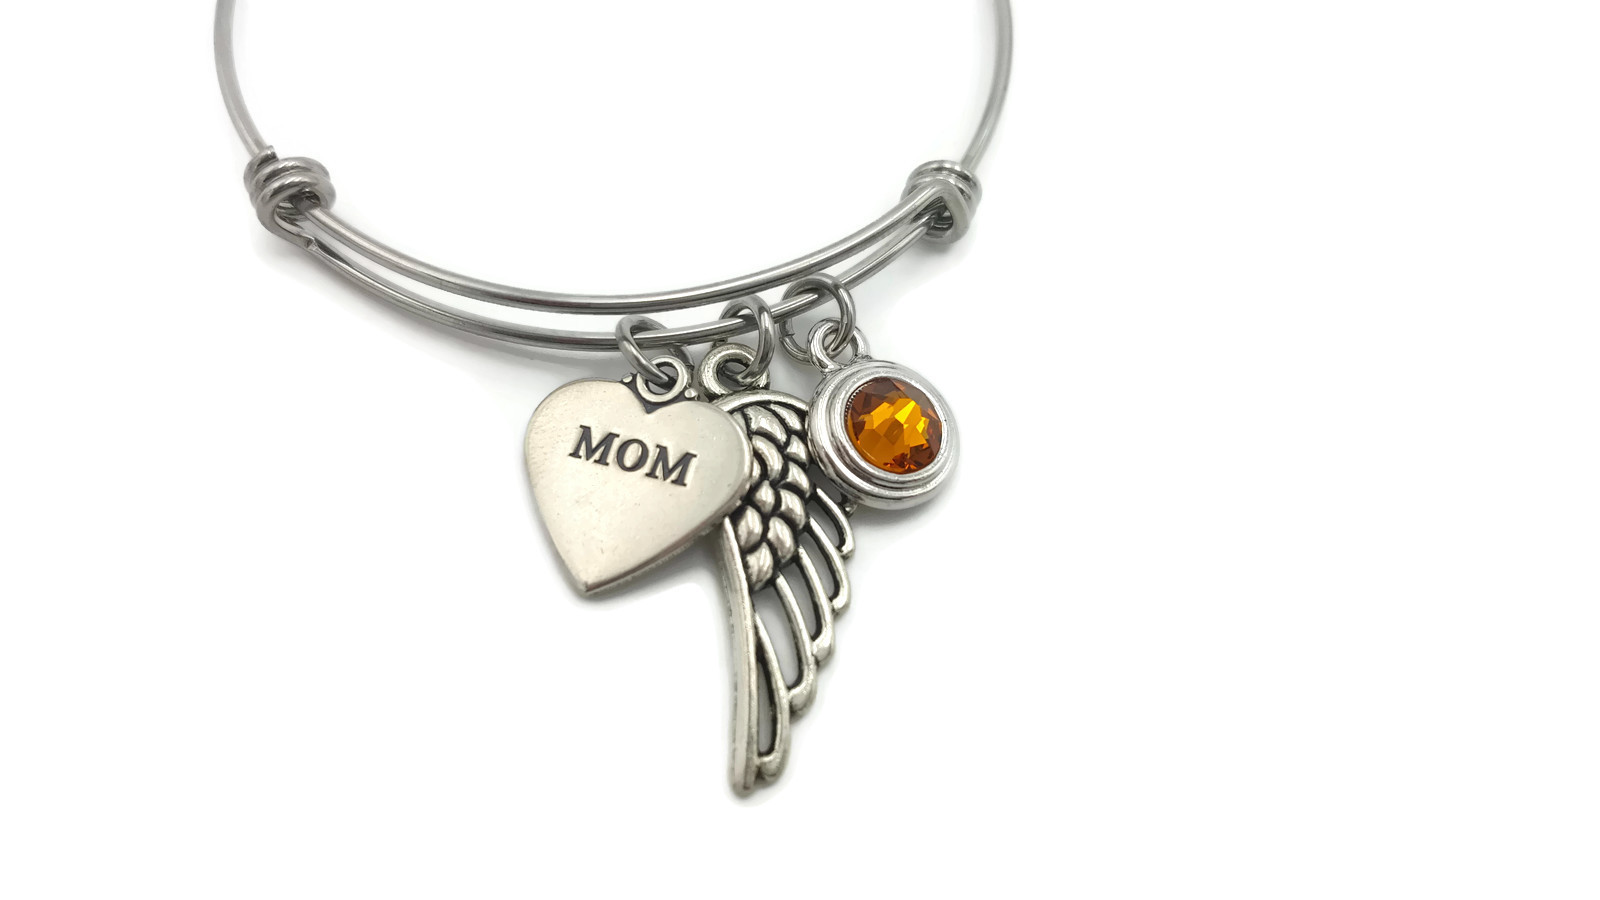 Memorial Bracelet for Loss of Mom - Remembrance Bracelet